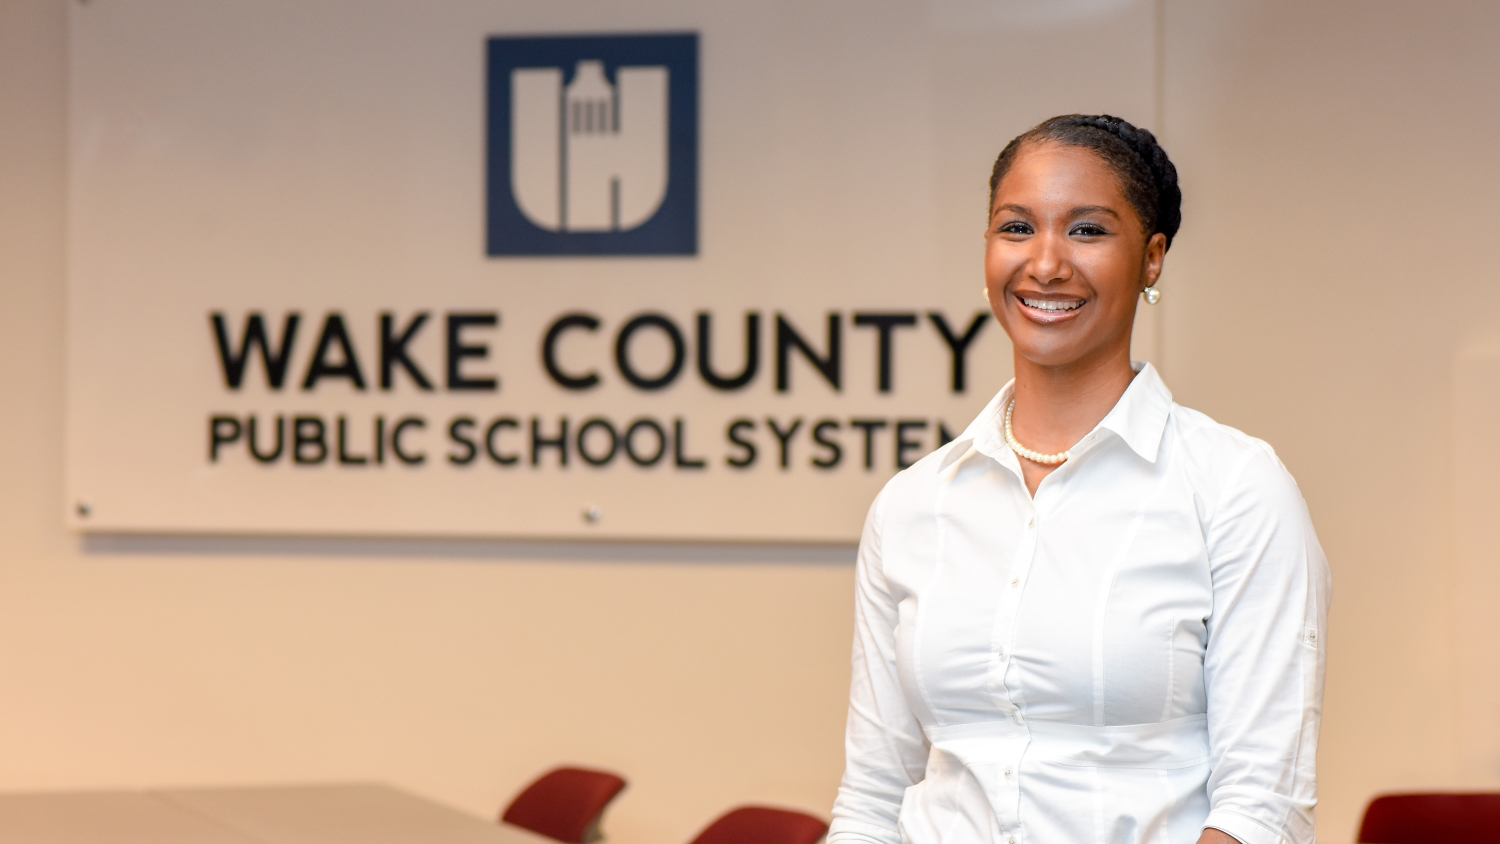 LaTeisha Jeannis in front of Wake County Public School System sign